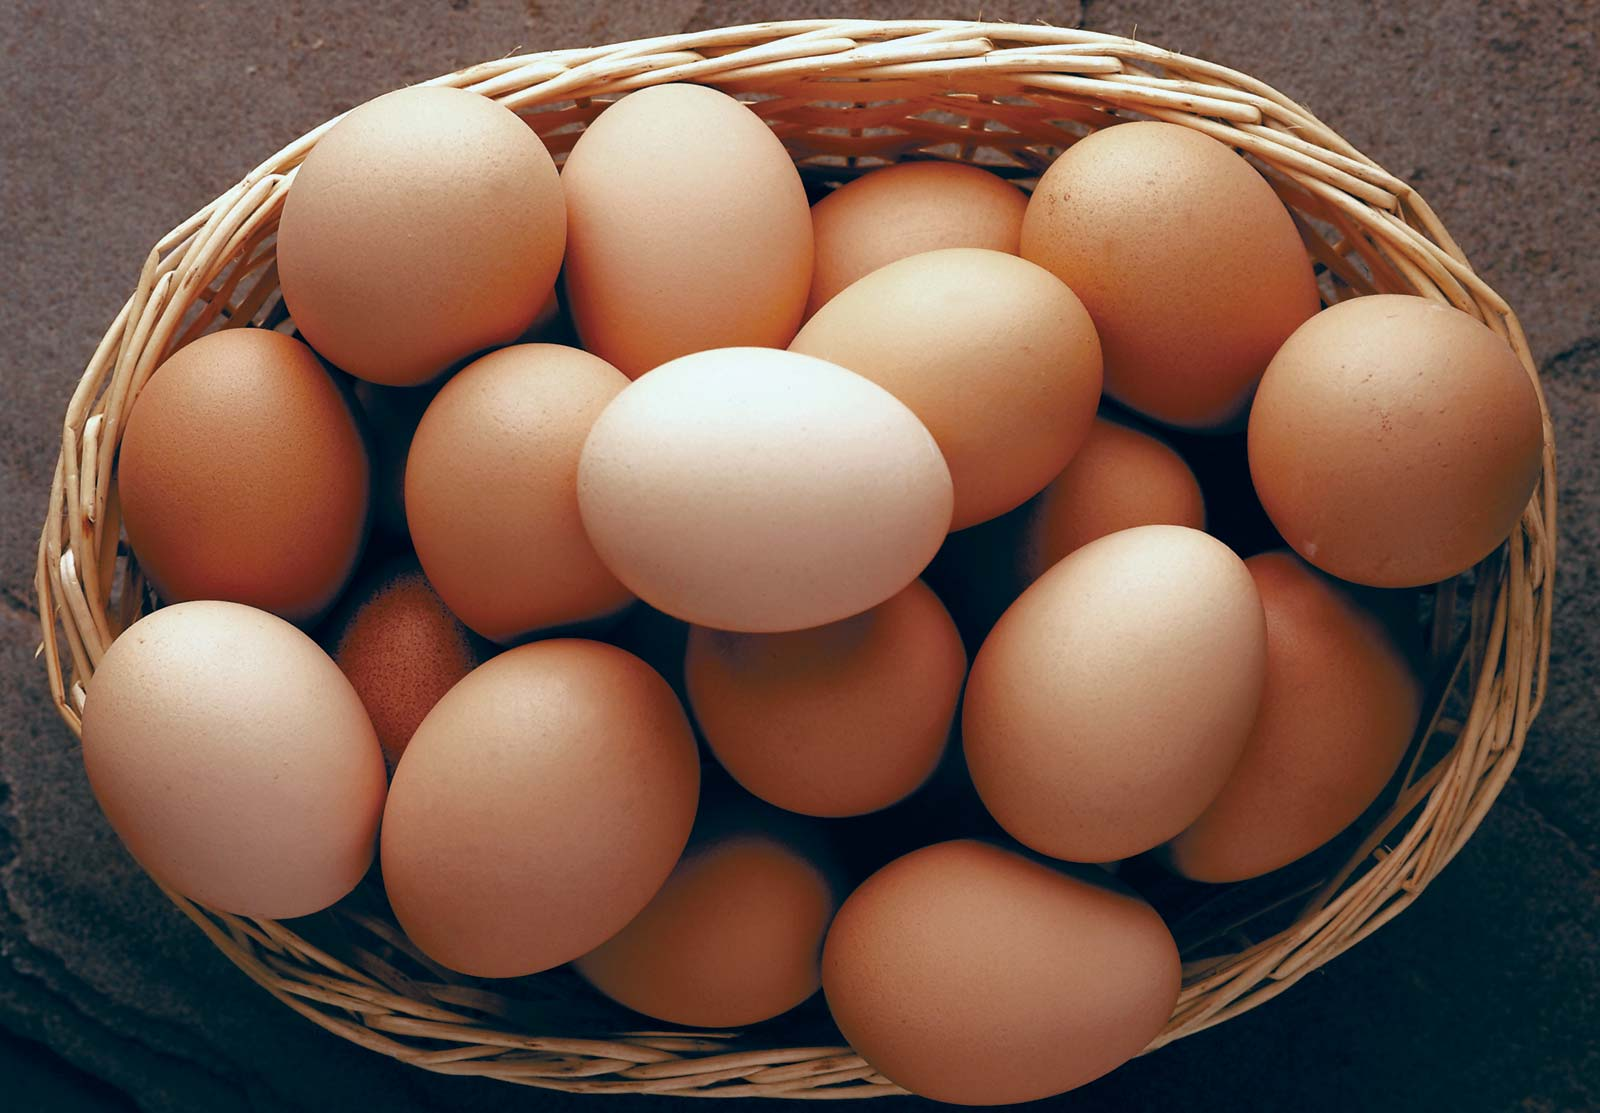 Farmer decries egg glut, calls for improved value-chain